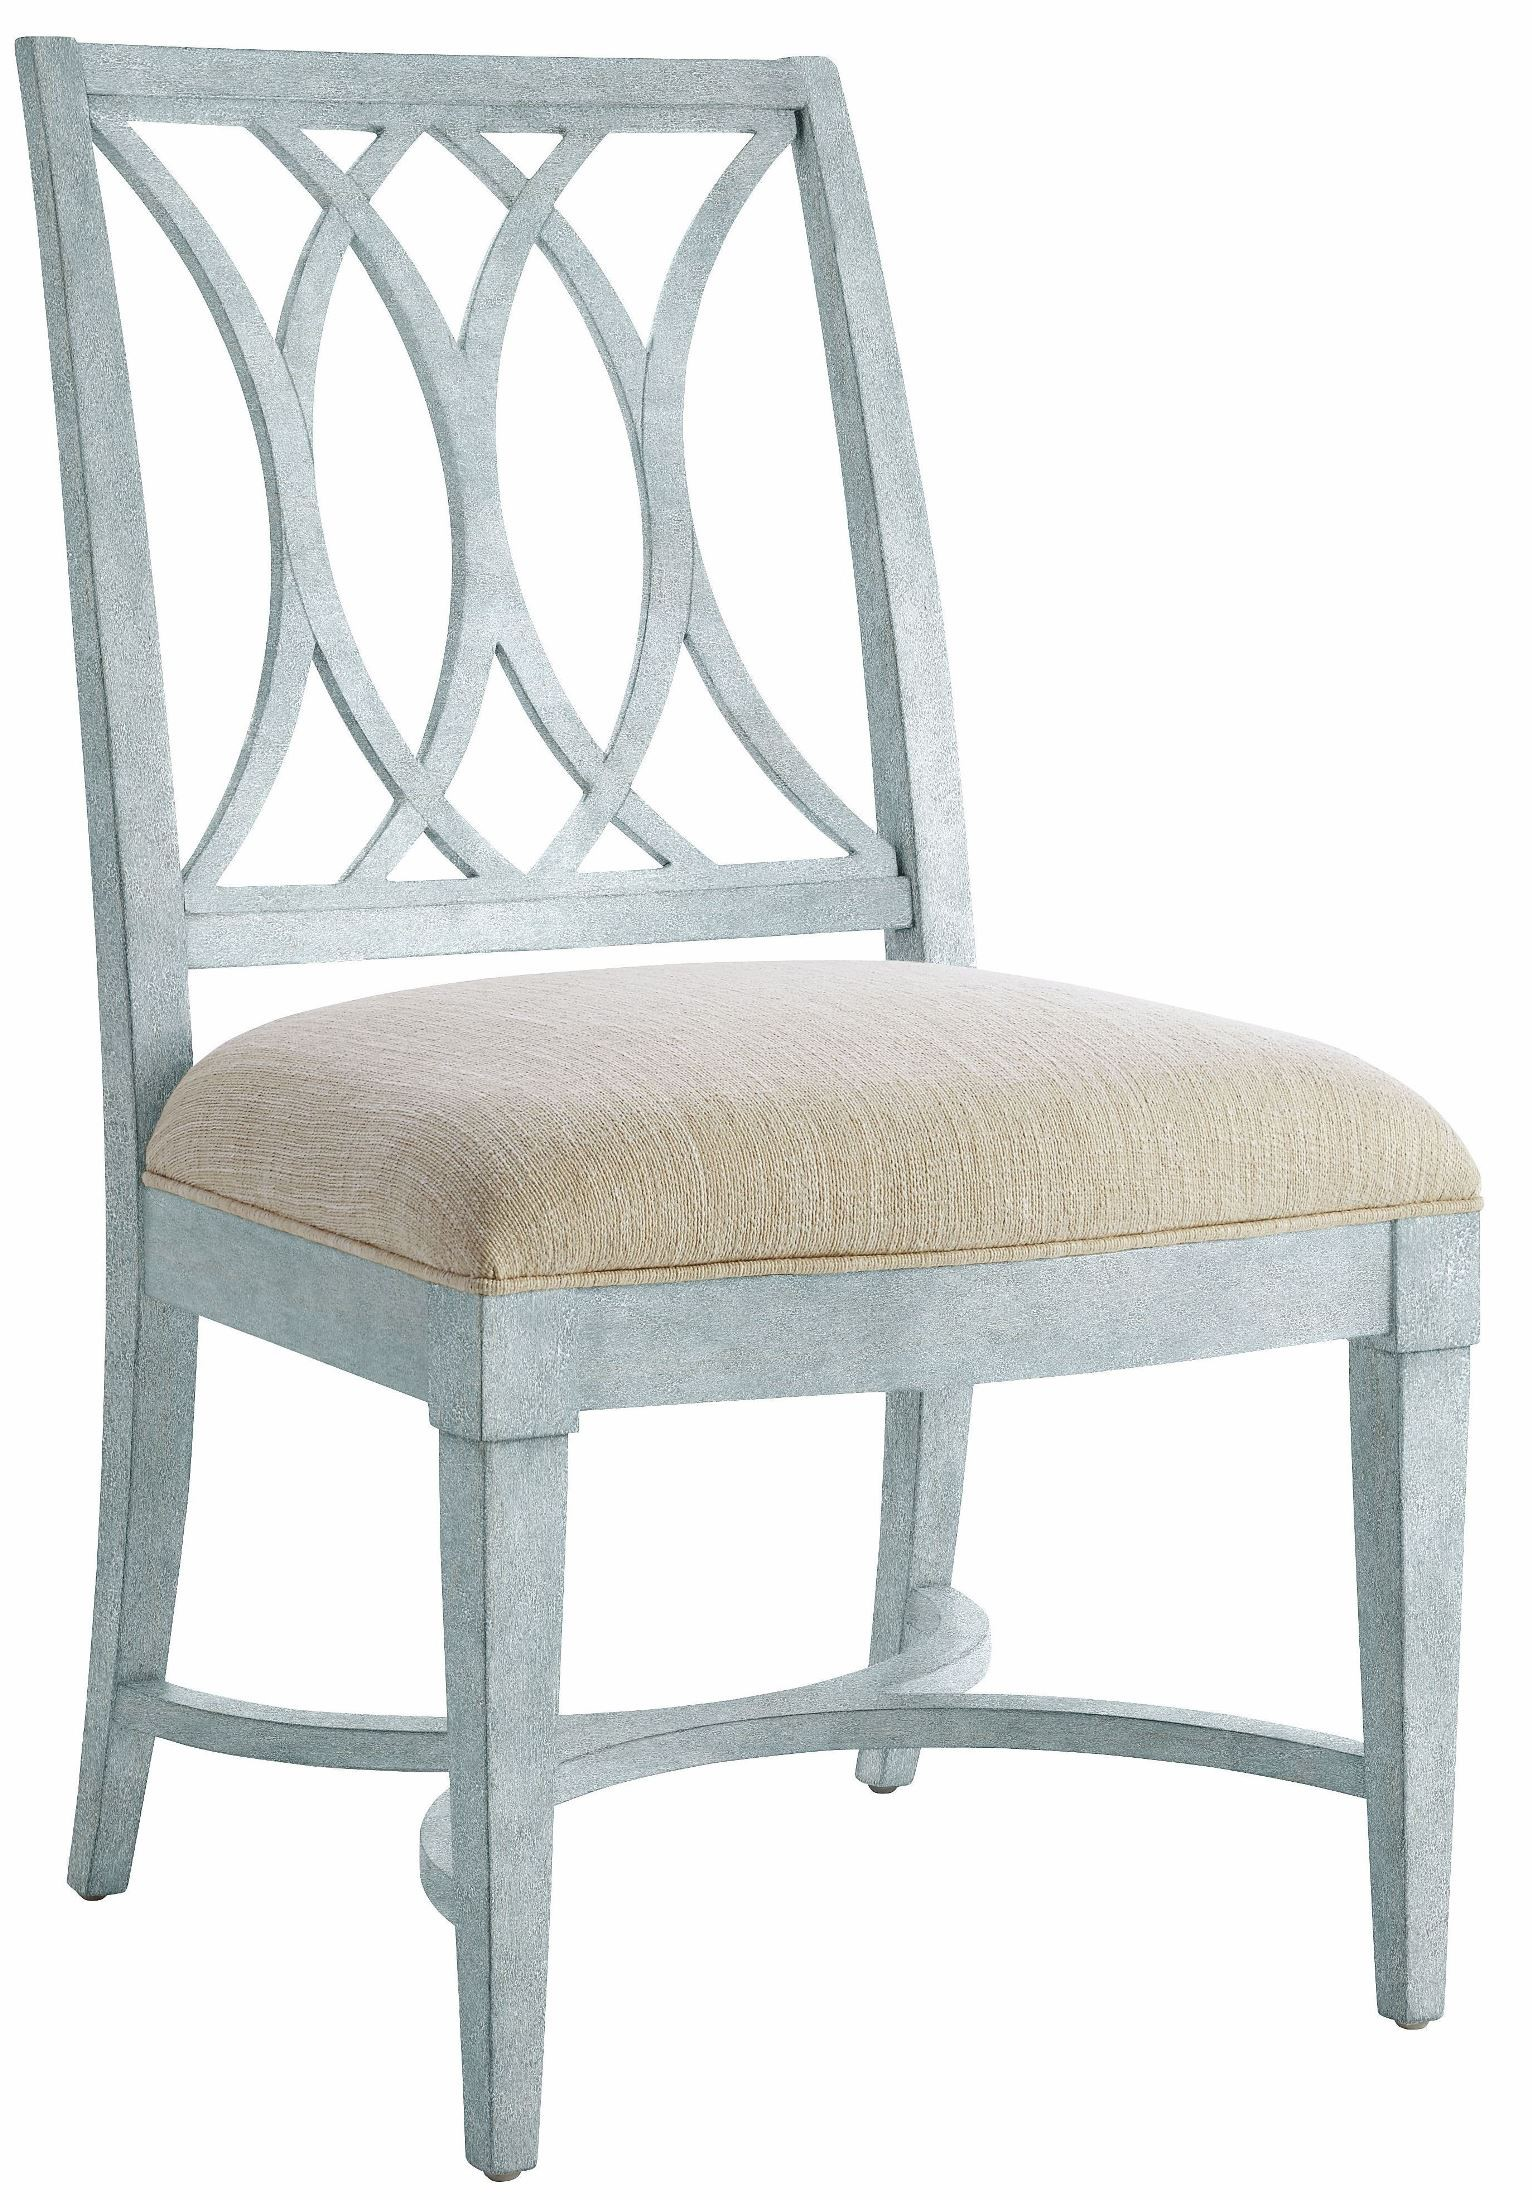 Salt Chair Coastal Living Resort Sea Salt Heritage Coast Side Chair